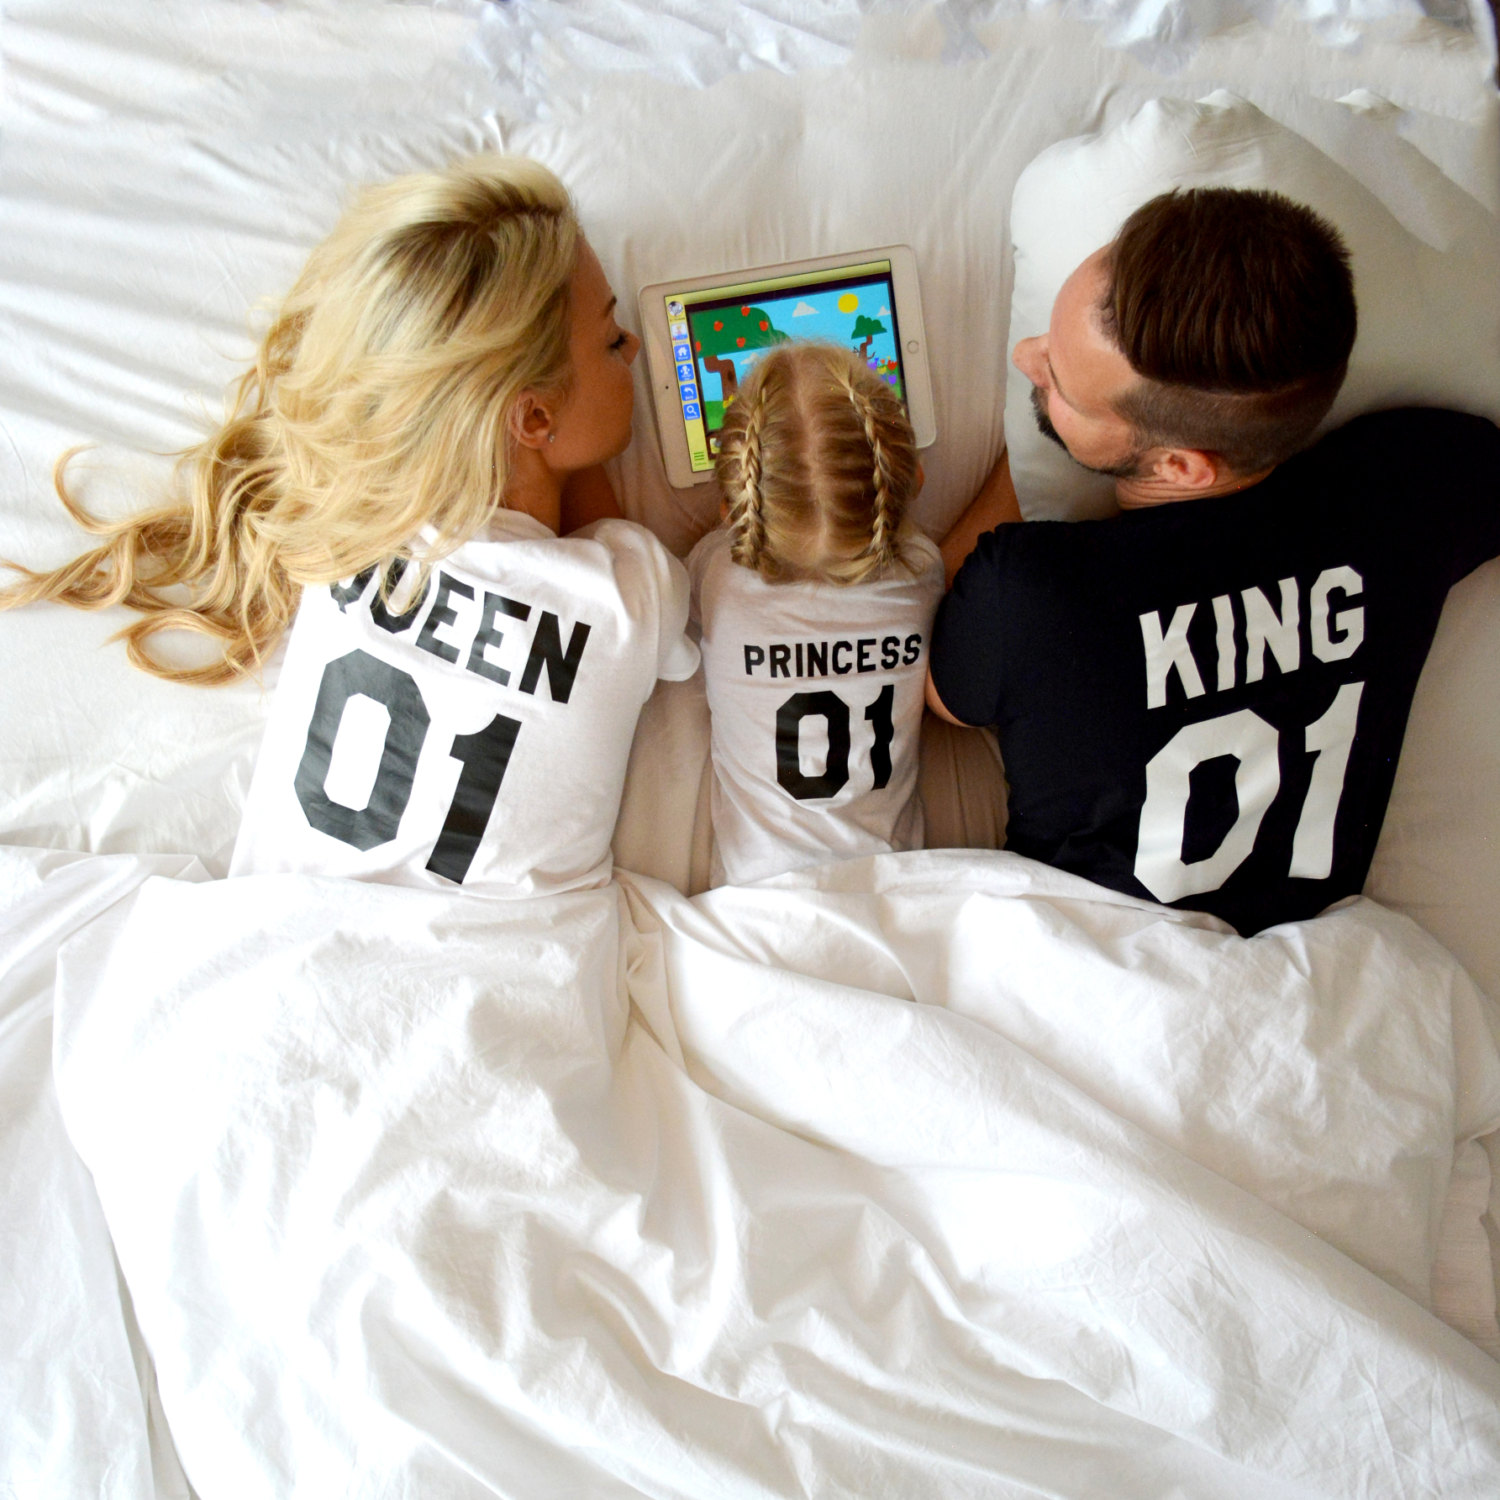 King Queen Prince, Matching Family Shirts, Unisex